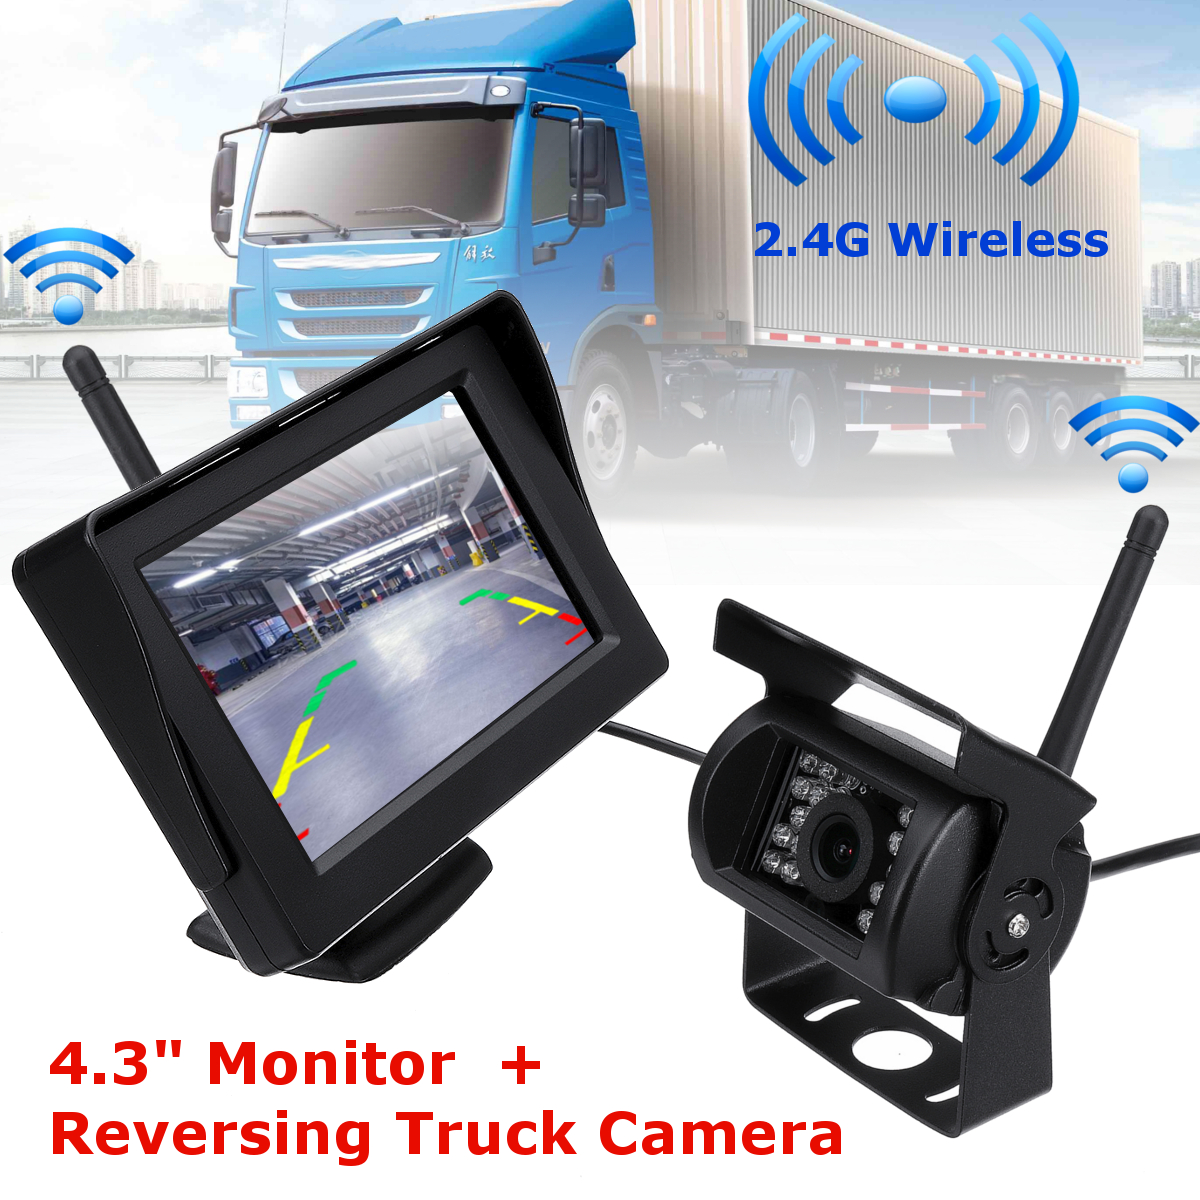 LCD 4.3 Inch Car TFT Monitor and 2.4G Wireless Night Vision Car Rear View Backup Camera System for 12-24V Truck Trailer wireless dual backup cameras parking assistance night vision waterproof rear view camera 7 monitor for rv truck trailer bus